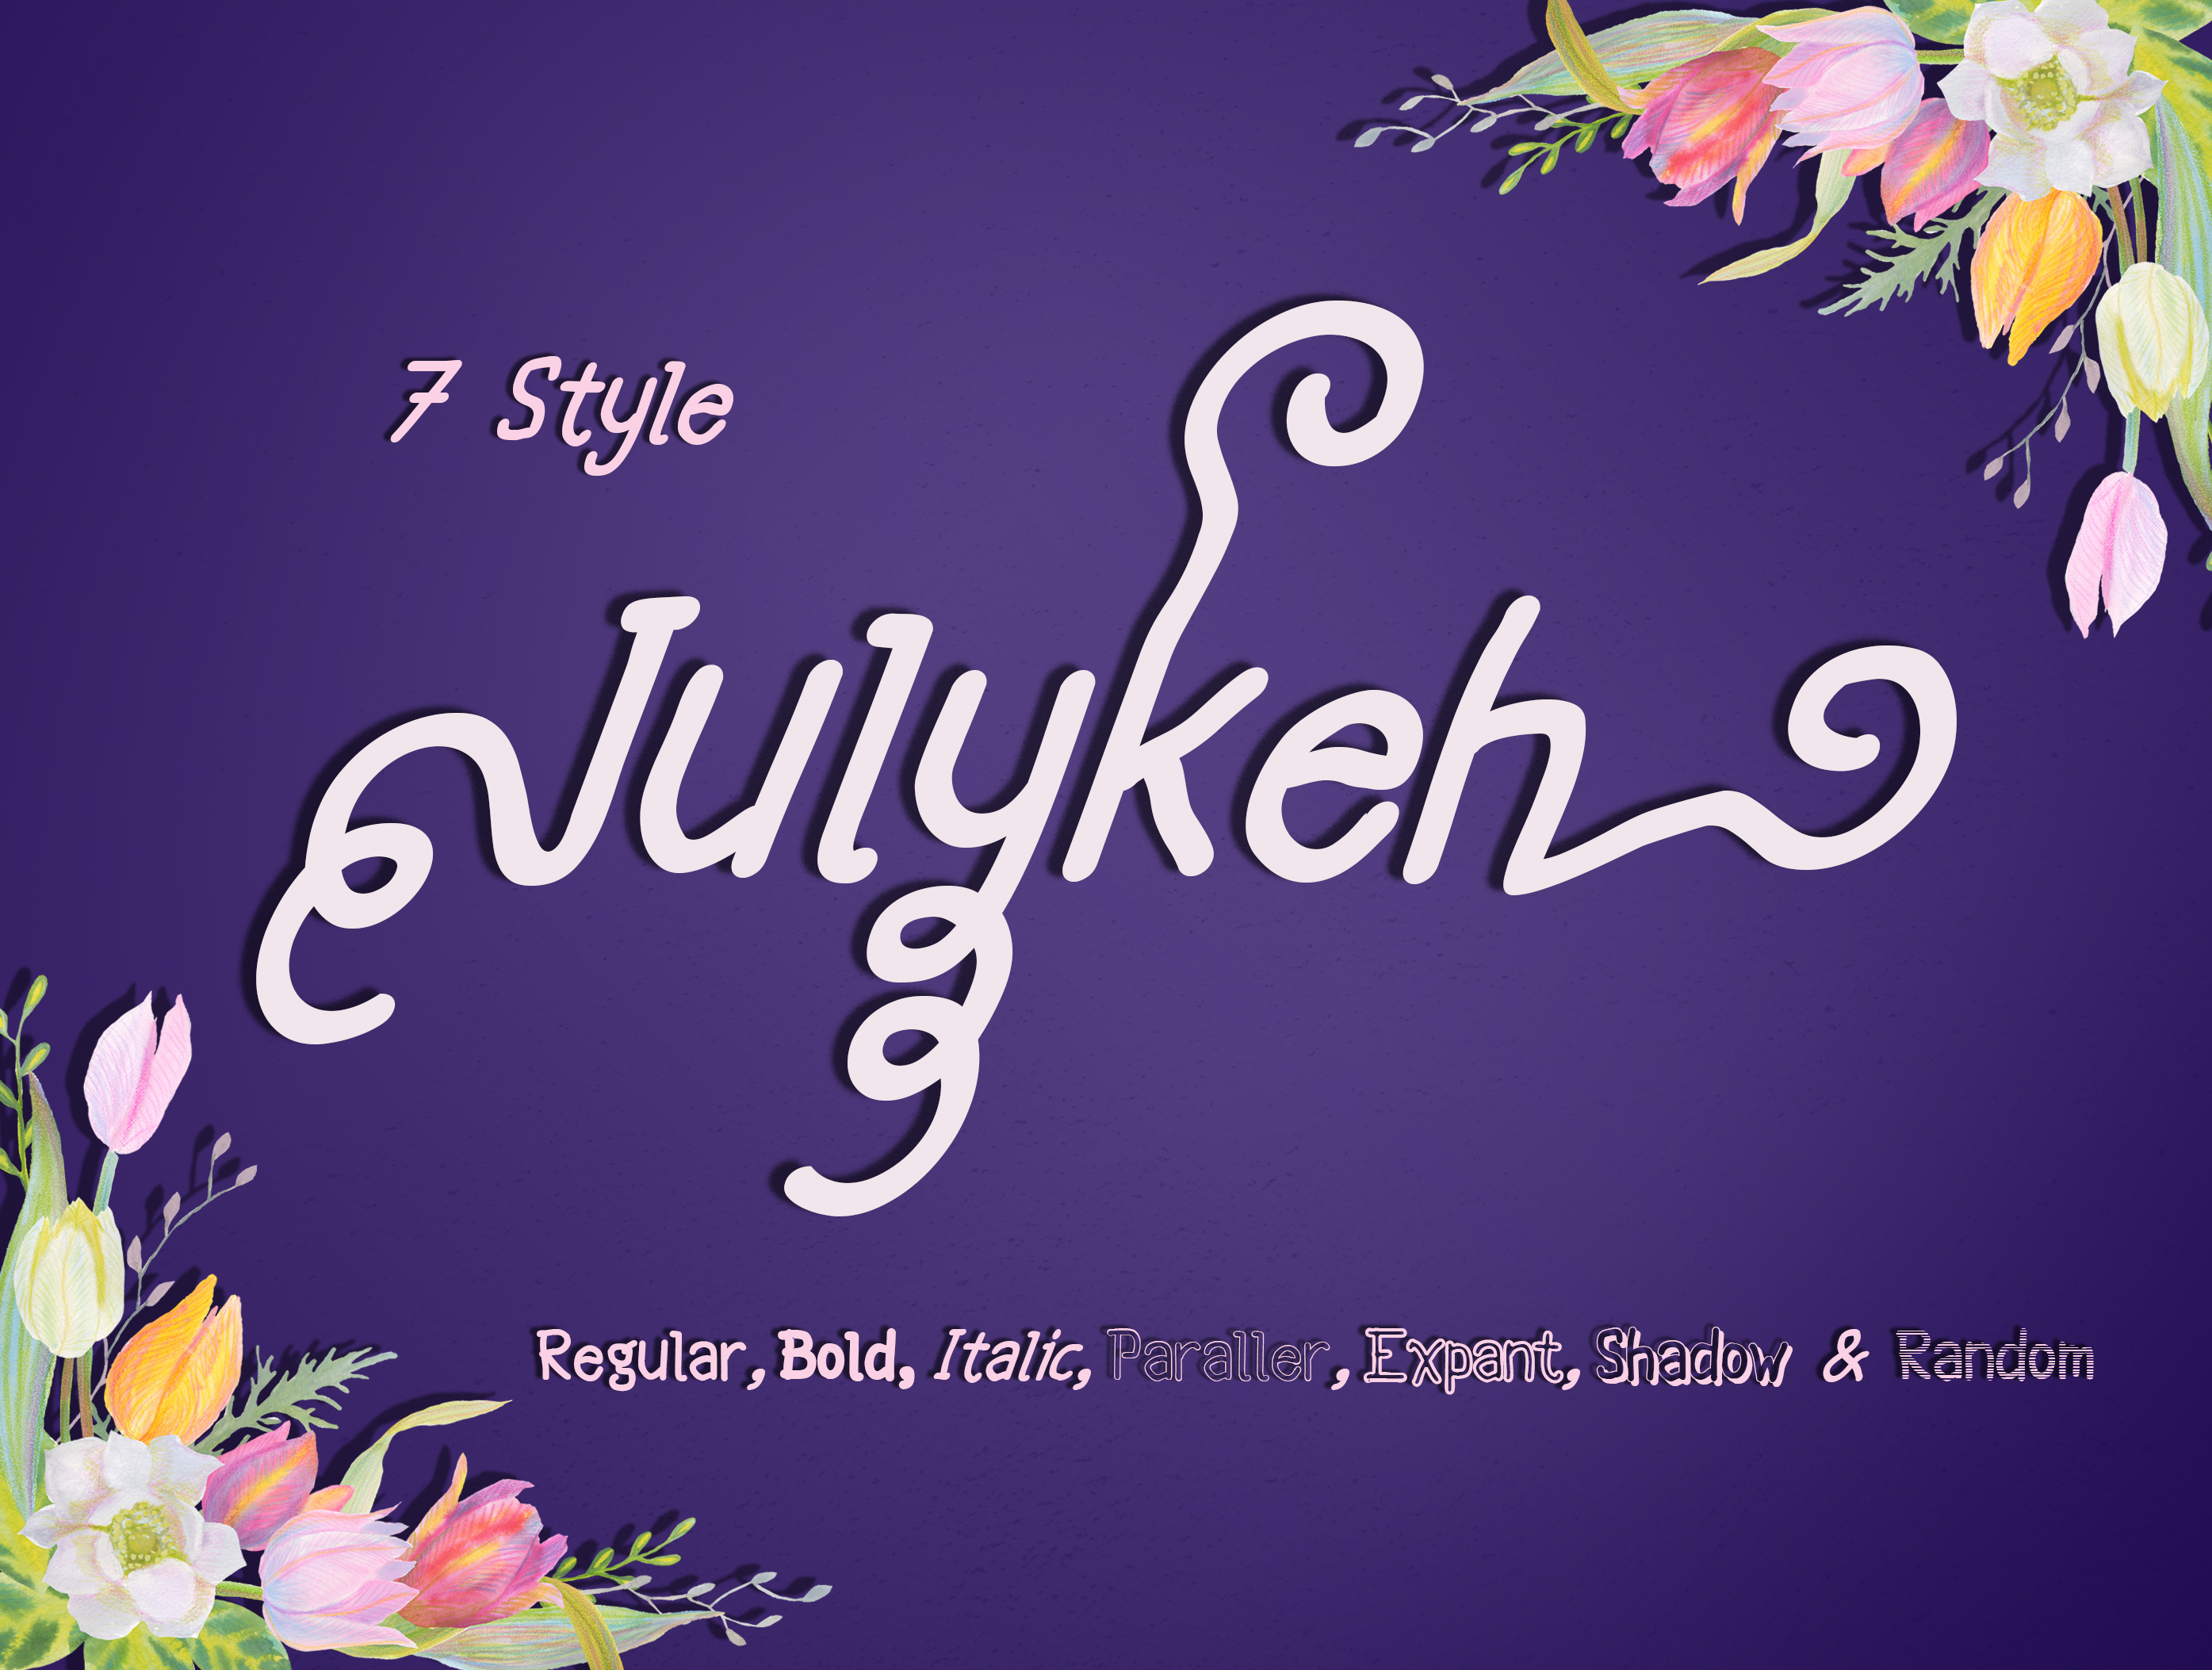 Julykeh handmade 7 Style Font example image 2